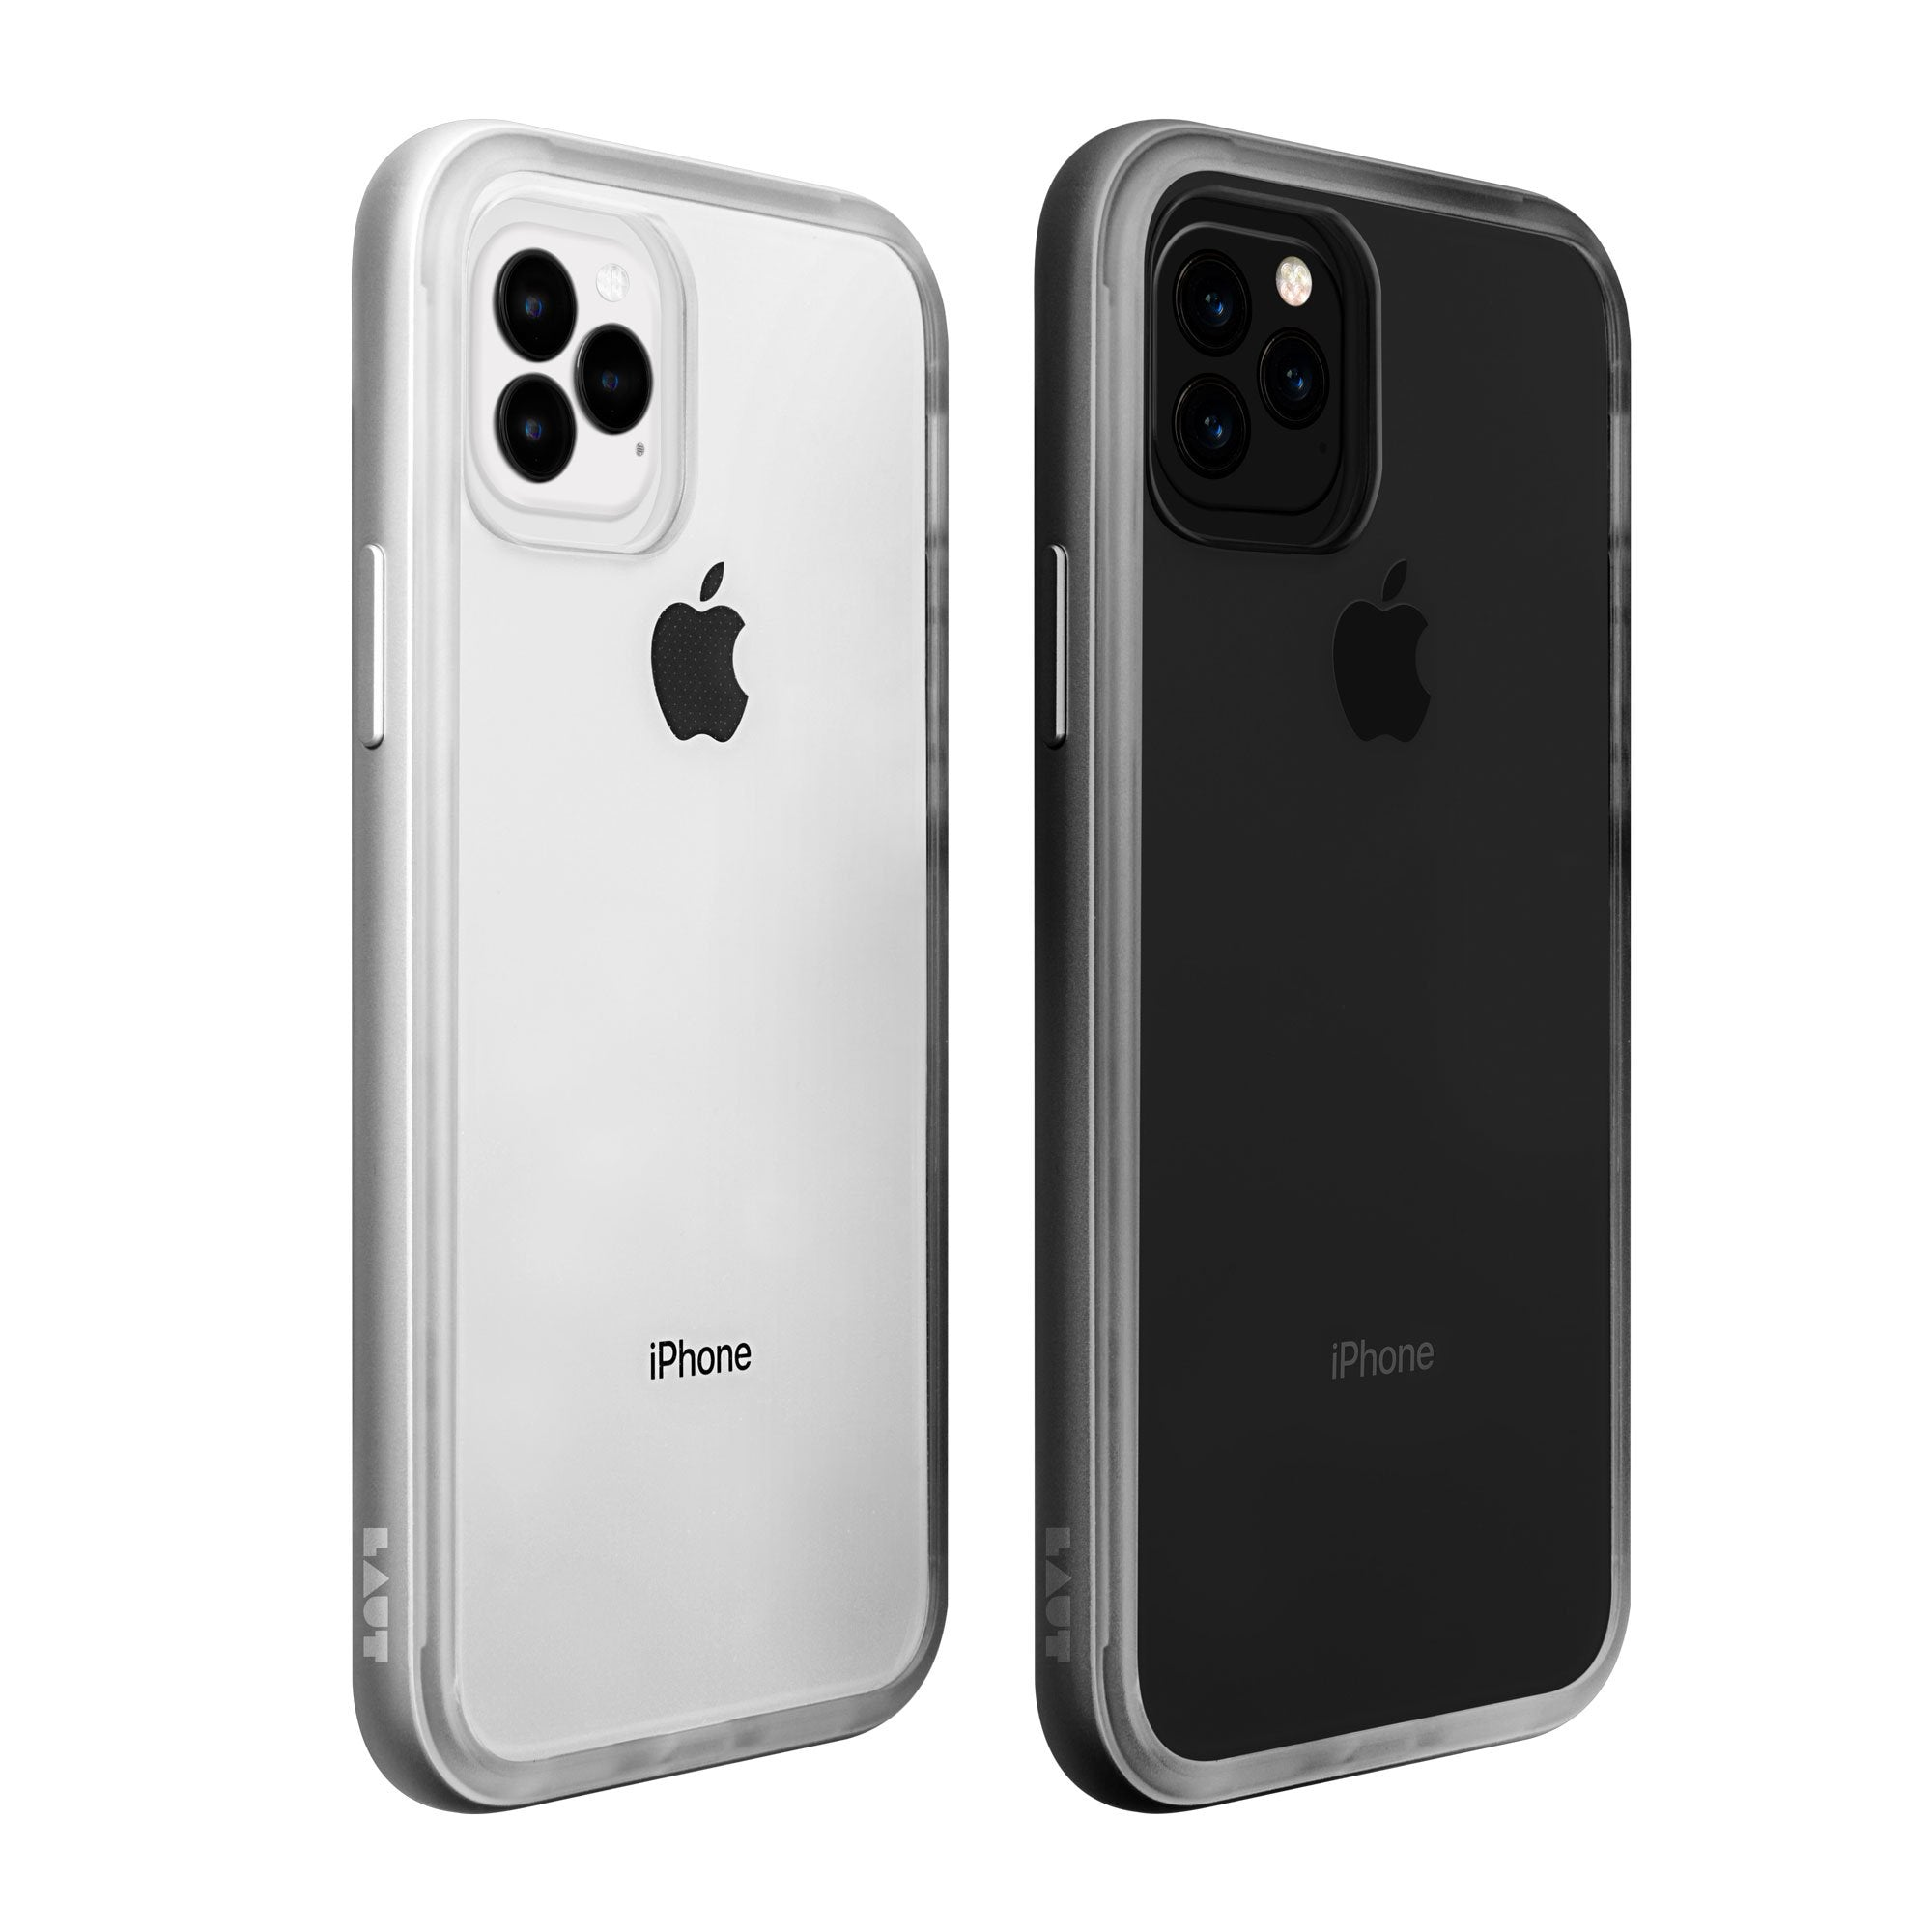 LAUT-EXOFRAME for iPhone 11 Series-Case-iPhone 11 / iPhone 11 Pro / iPhone 11 Pro Max